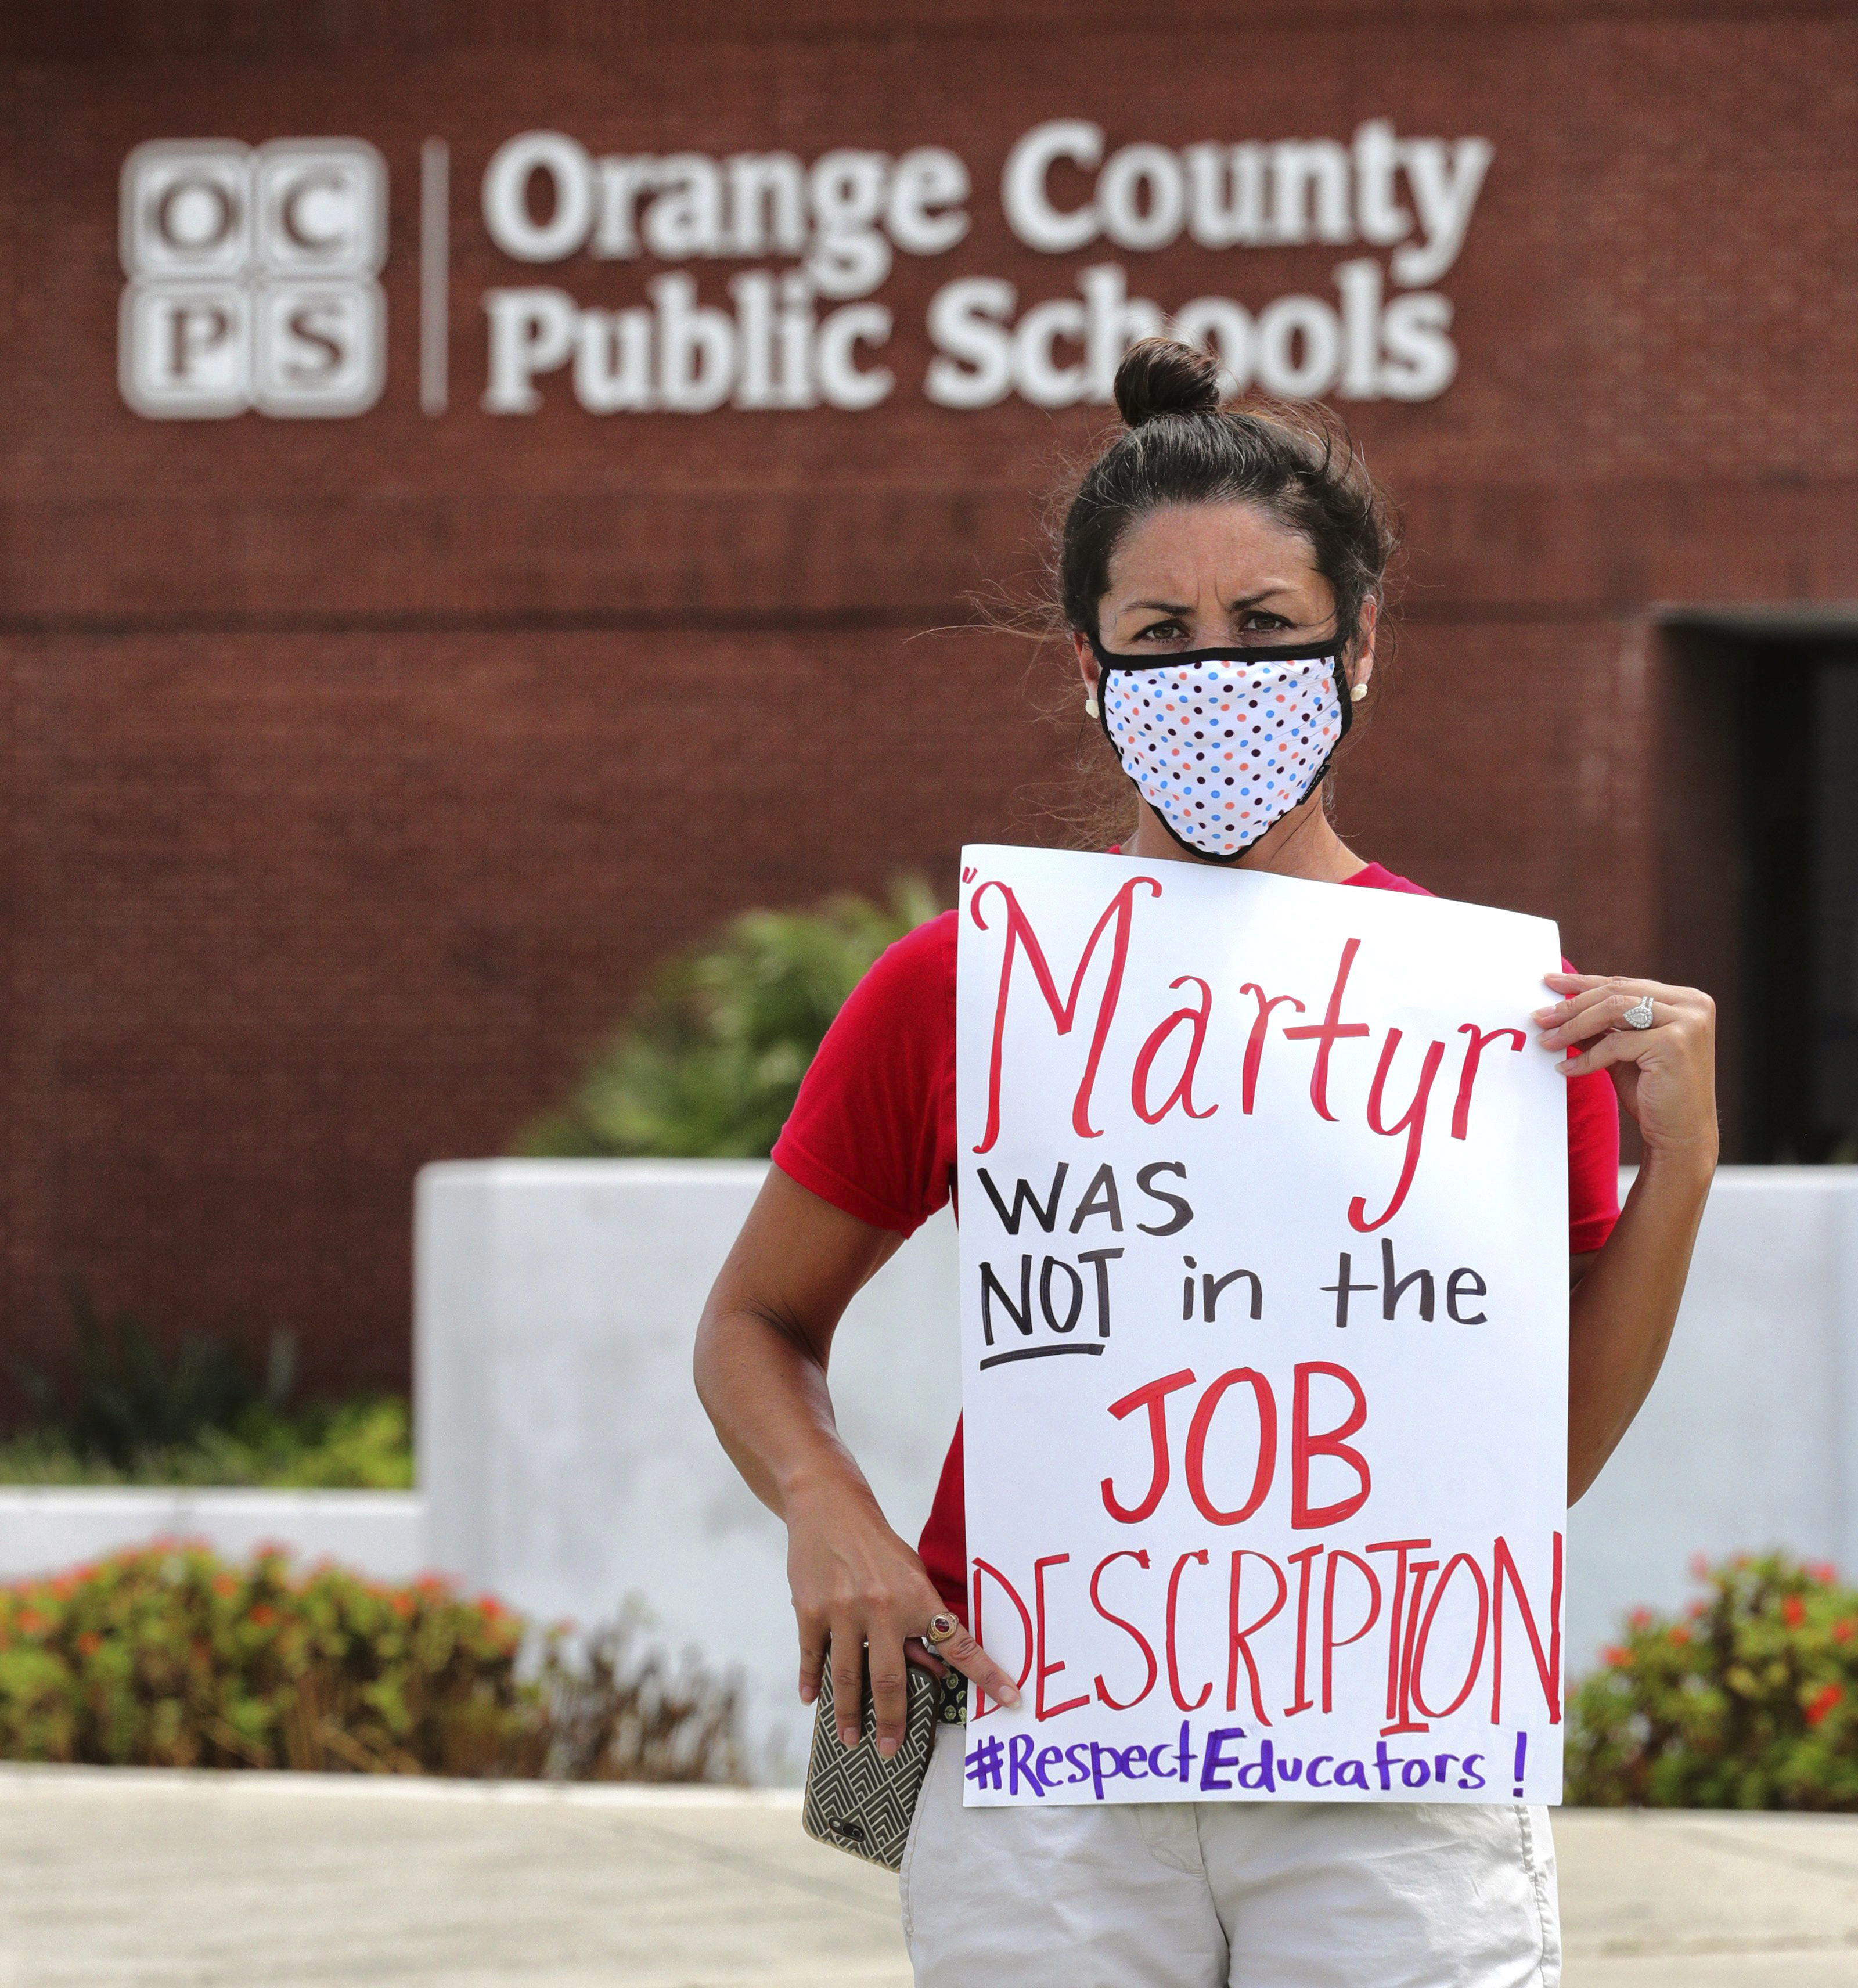 Rachel Bardes holds a sign in front of the Orange County Public Schools headquarters in Orlando, Fla., on July 7, 2020, as teachers protest a mandate that all public schools open in August despite the spike in coronavirus cases in Florida.